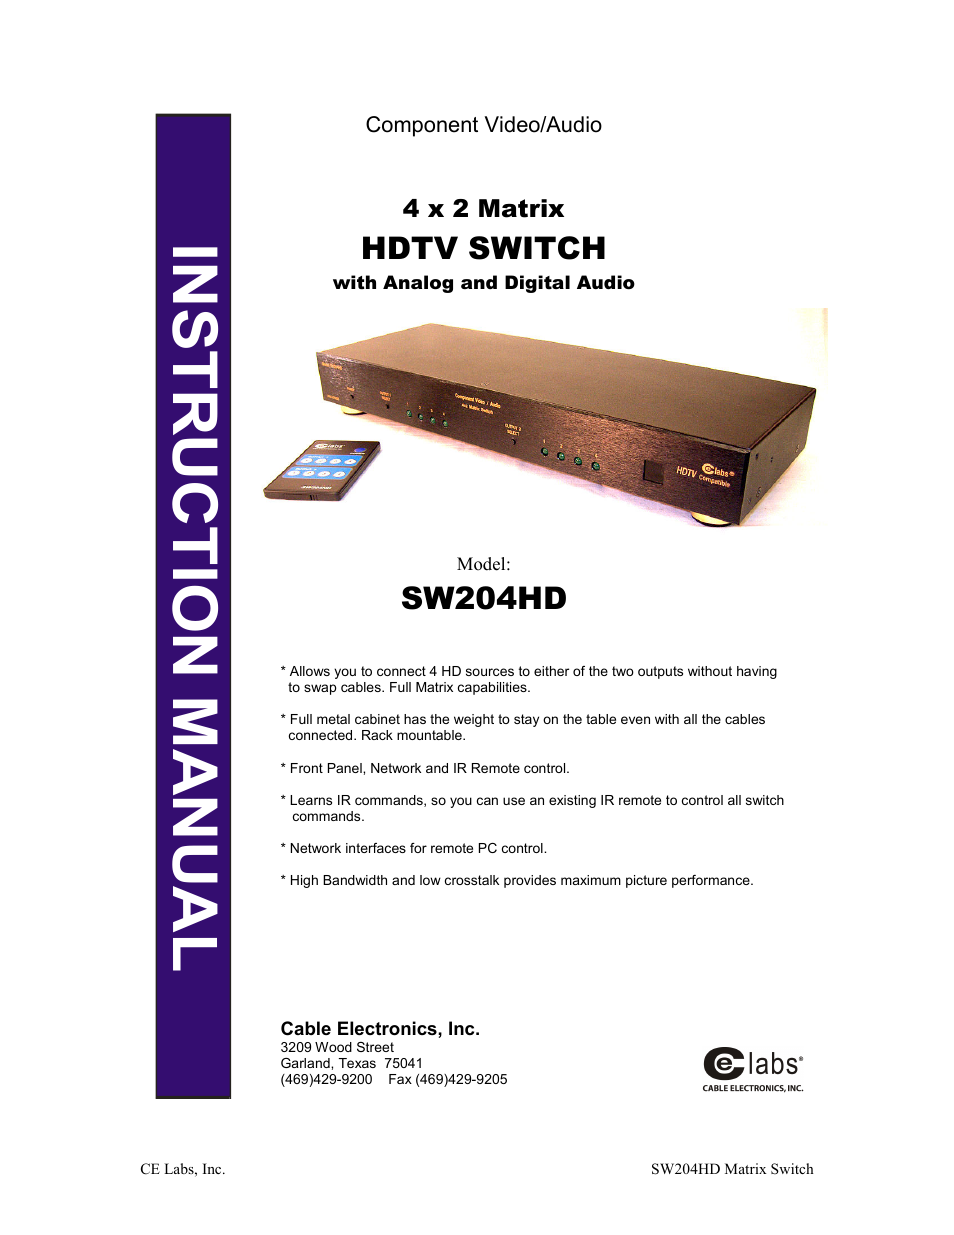 Ce Labs Sw204hd Owners Manual